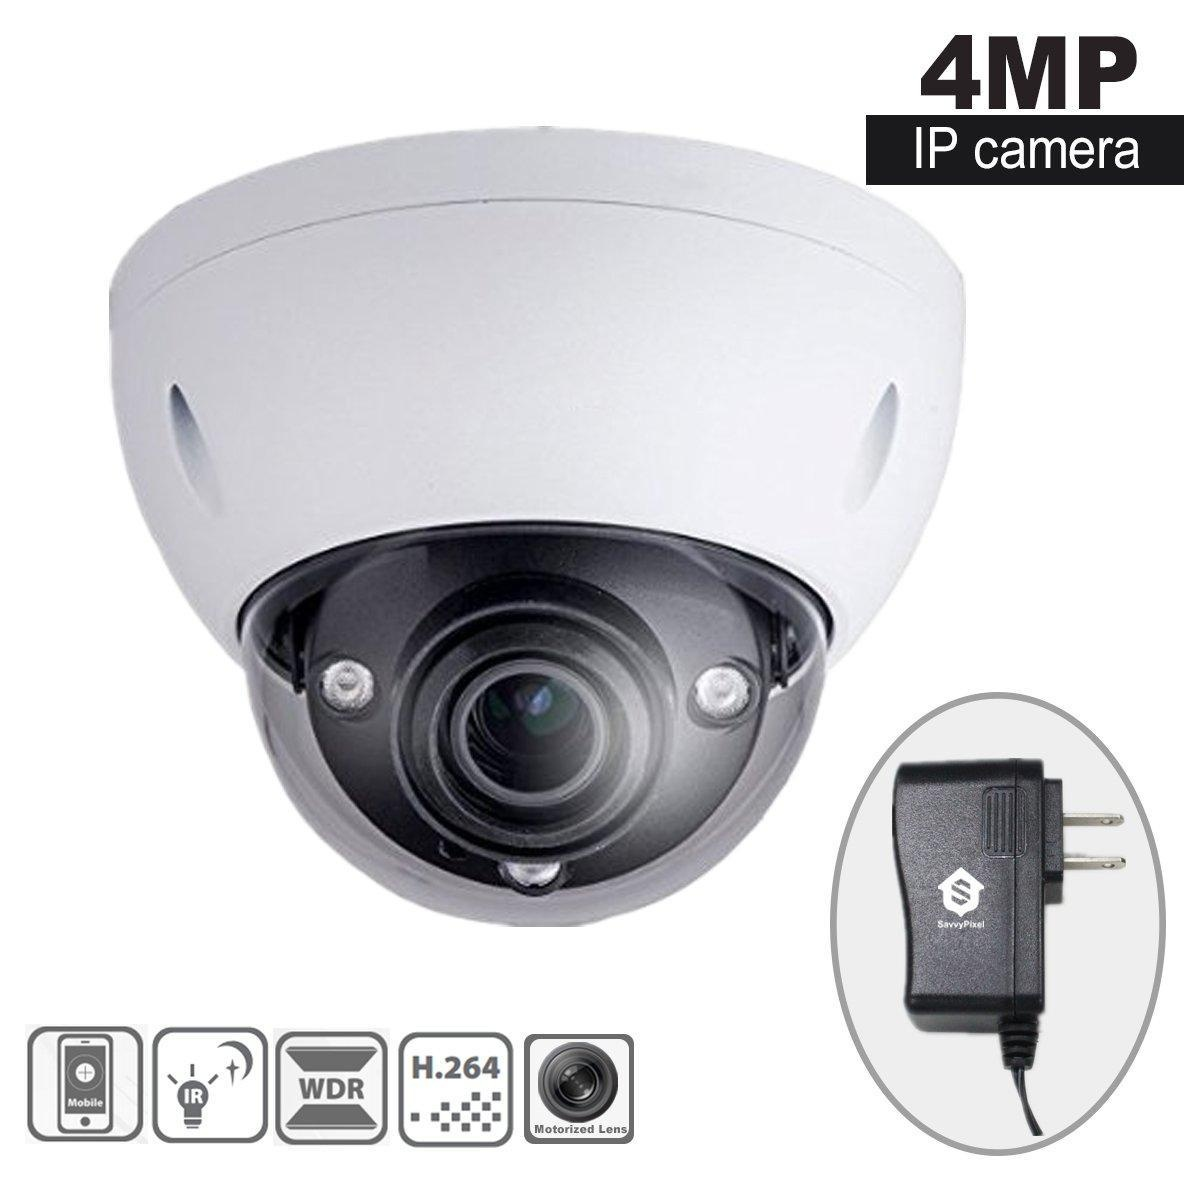 Online store savvypixel to 12mm motorized lens for Motorized security camera system